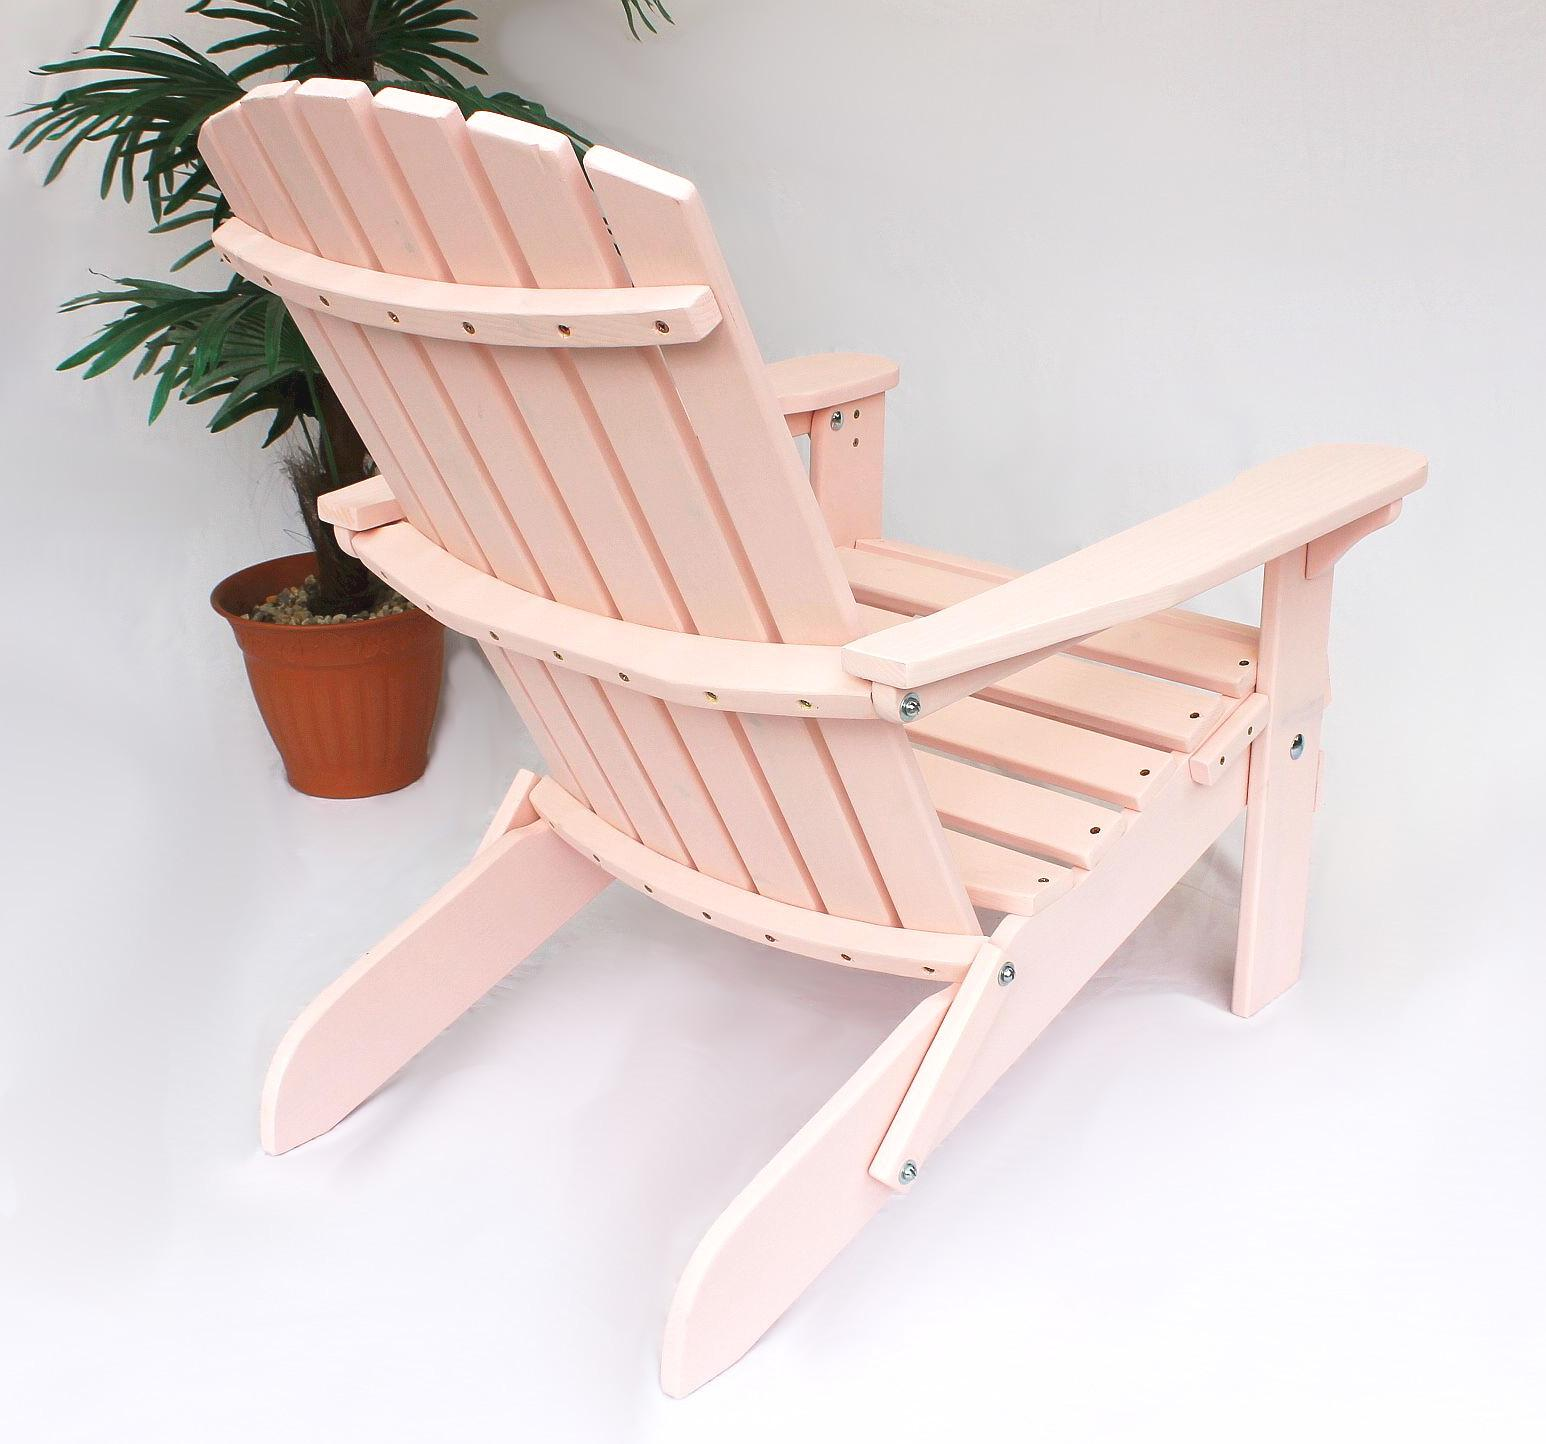 dandibo strandstuhl holz rosa gartenstuhl klappbar adirondack deckchair kaufen bei dandibo. Black Bedroom Furniture Sets. Home Design Ideas